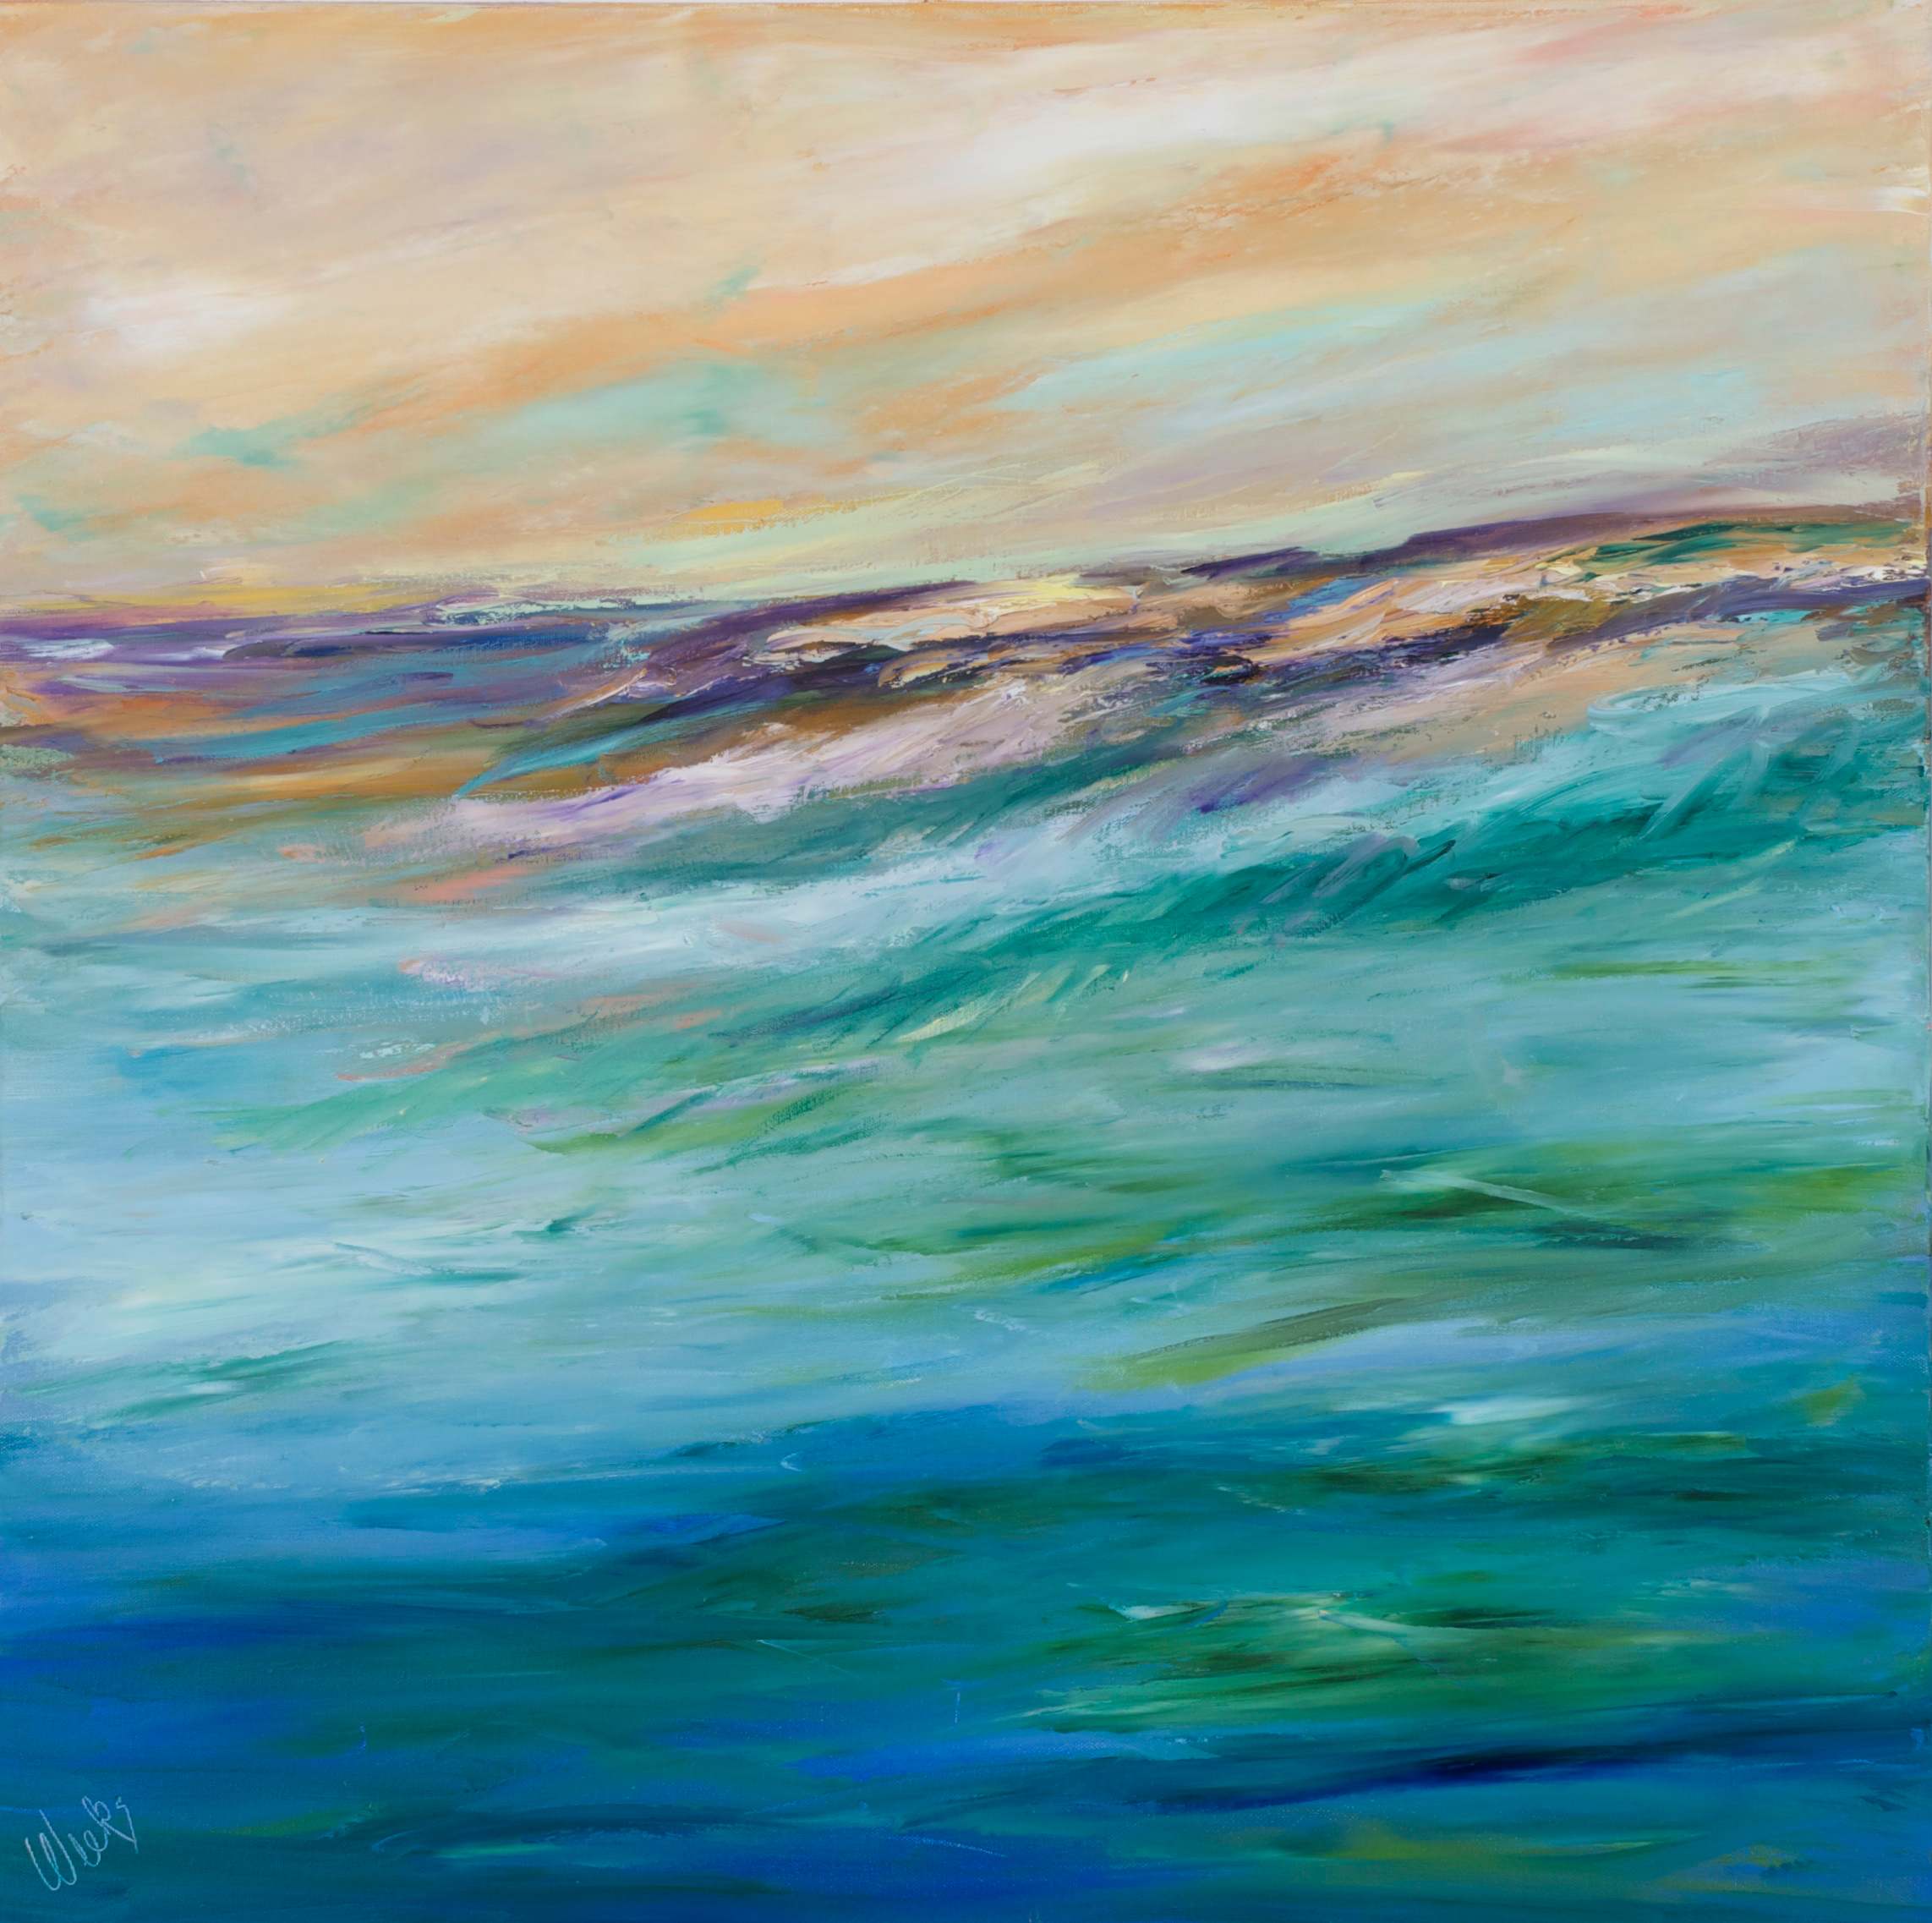 """A Little Wave Action"" - 30 x 30 inch"